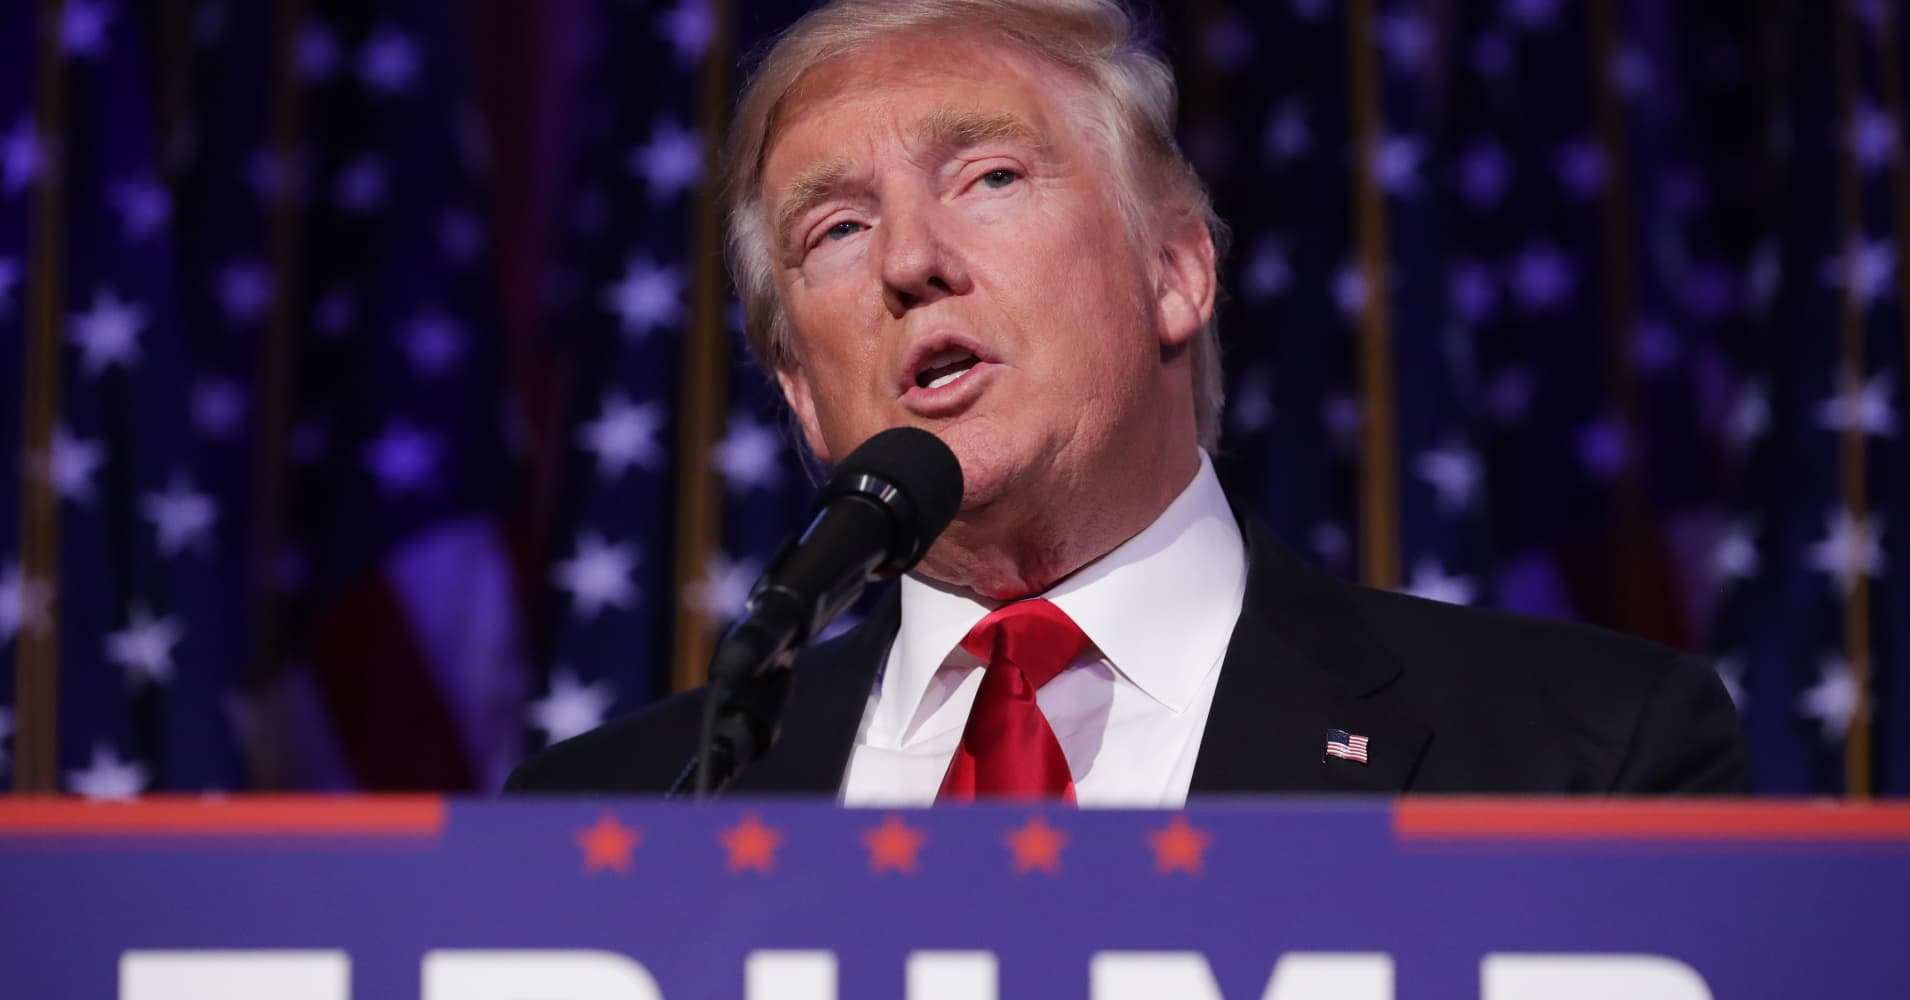 Research indicates there has been a drop in worker productivity and other consequences following the election of Donald Trump. Therapists refer to this as Trump Anxiety Disorder.